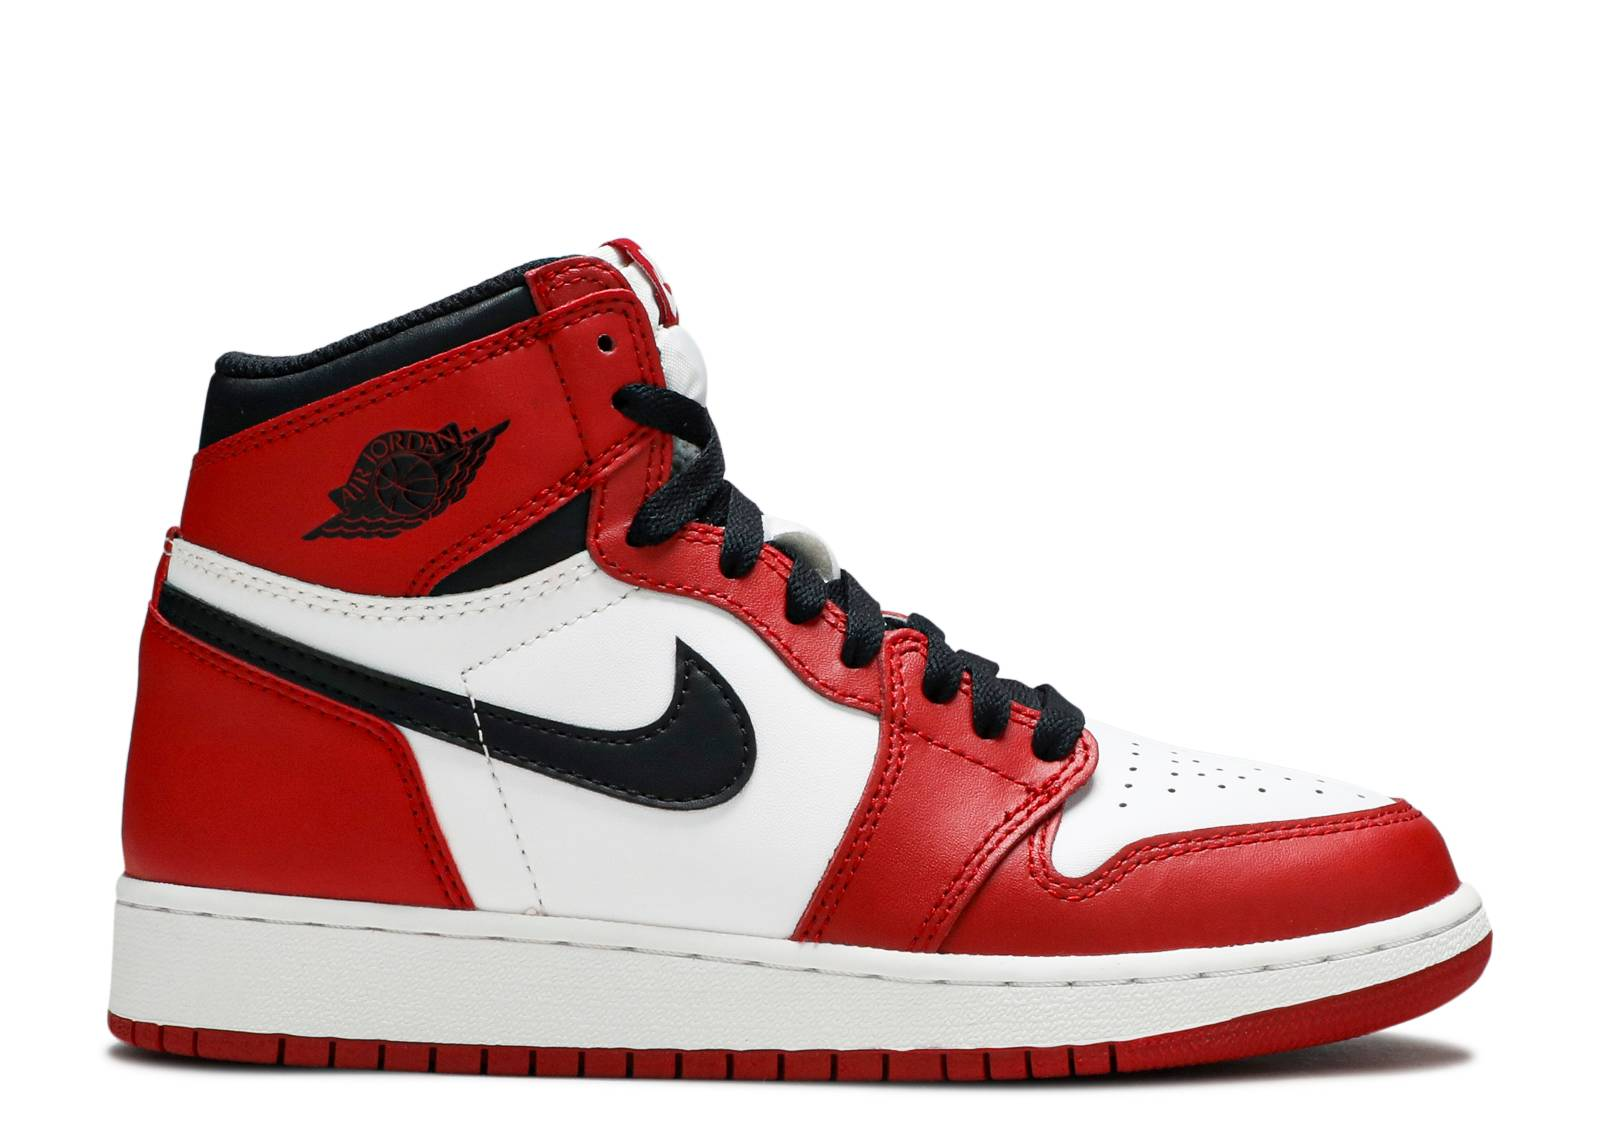 nike air jordan 1 chicago